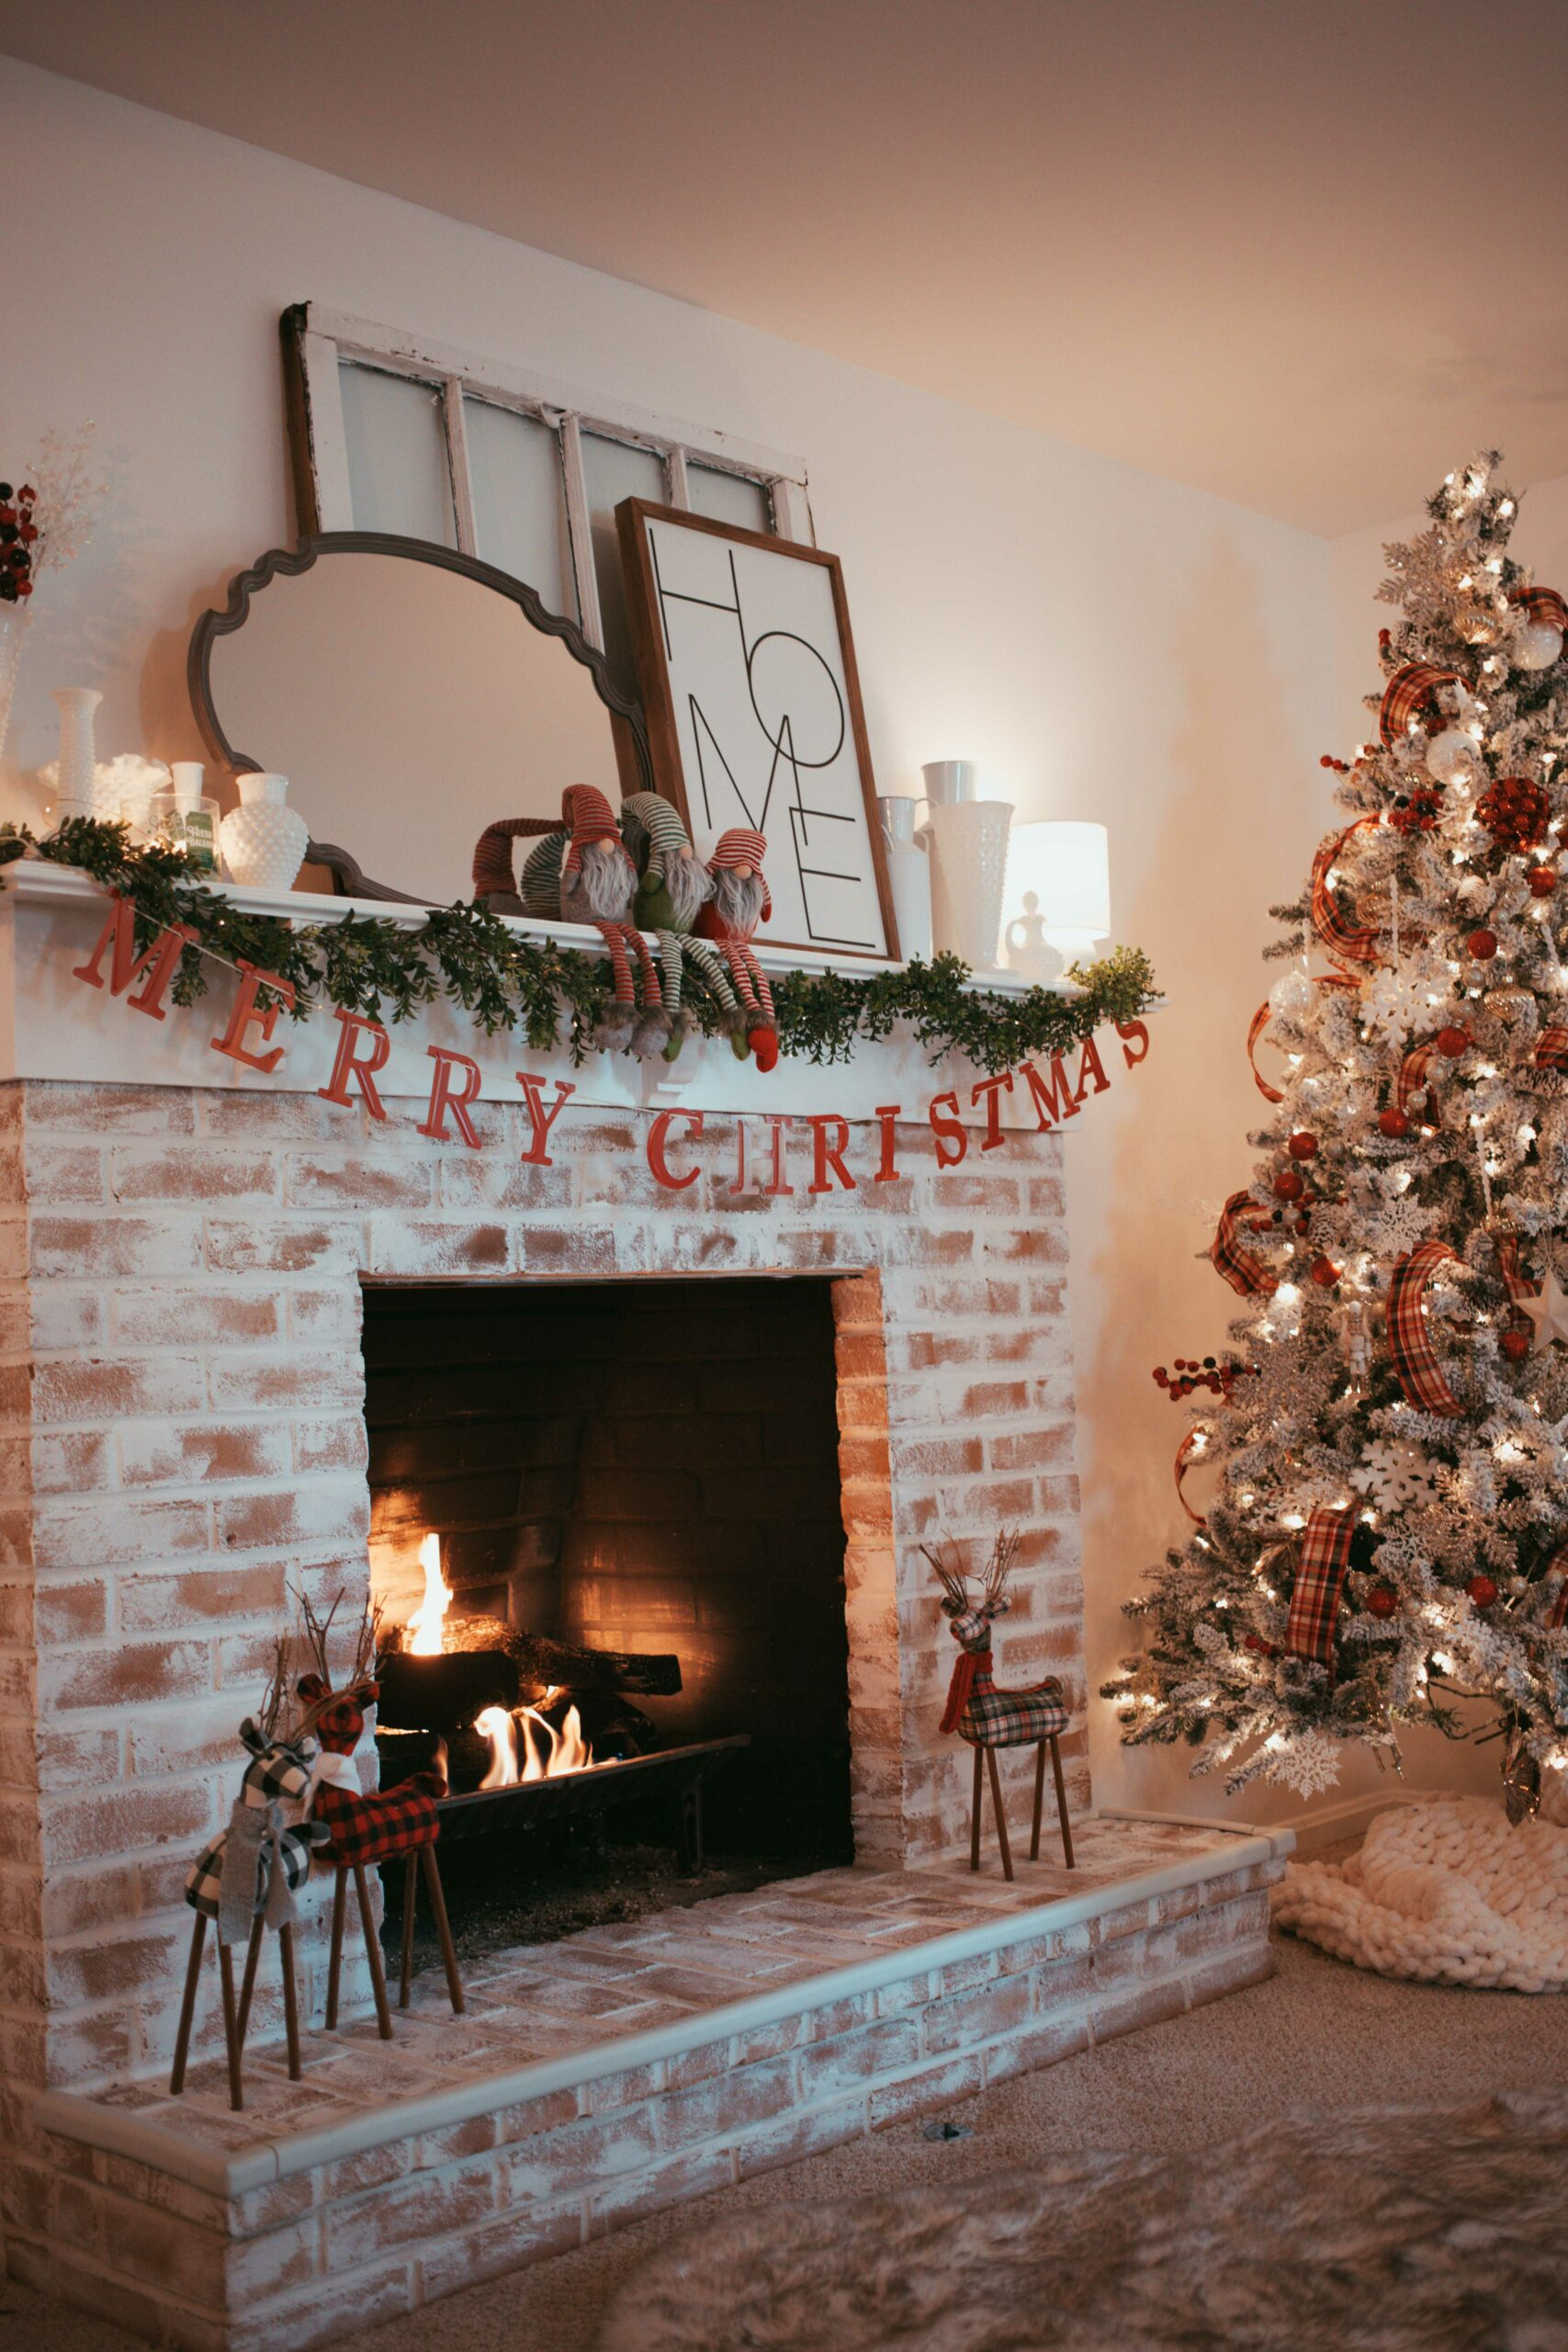 How to Decorate Your Christmas Tree Under $150 angela lanter hello gorgeous